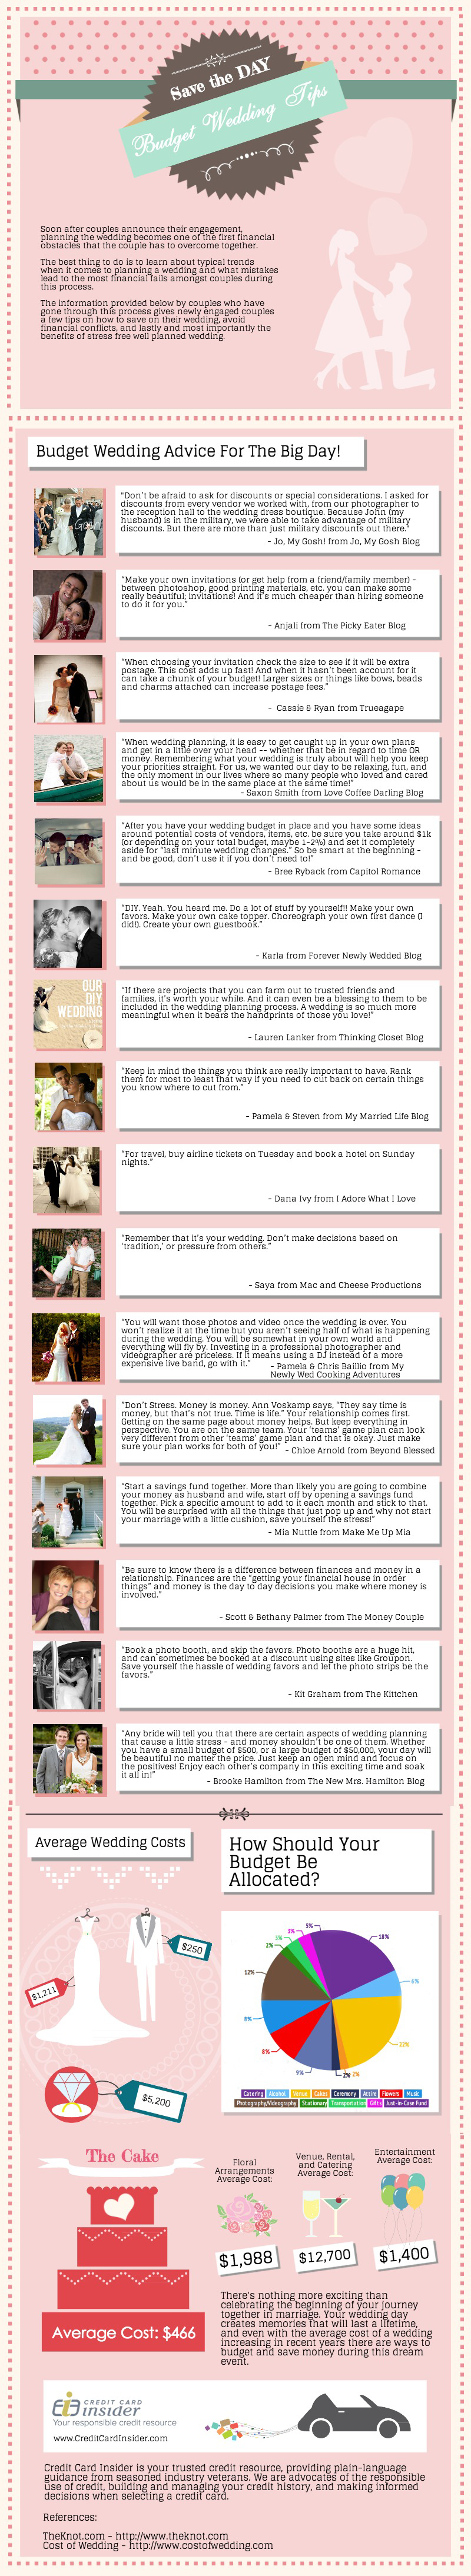 Wedding-Graphic-3